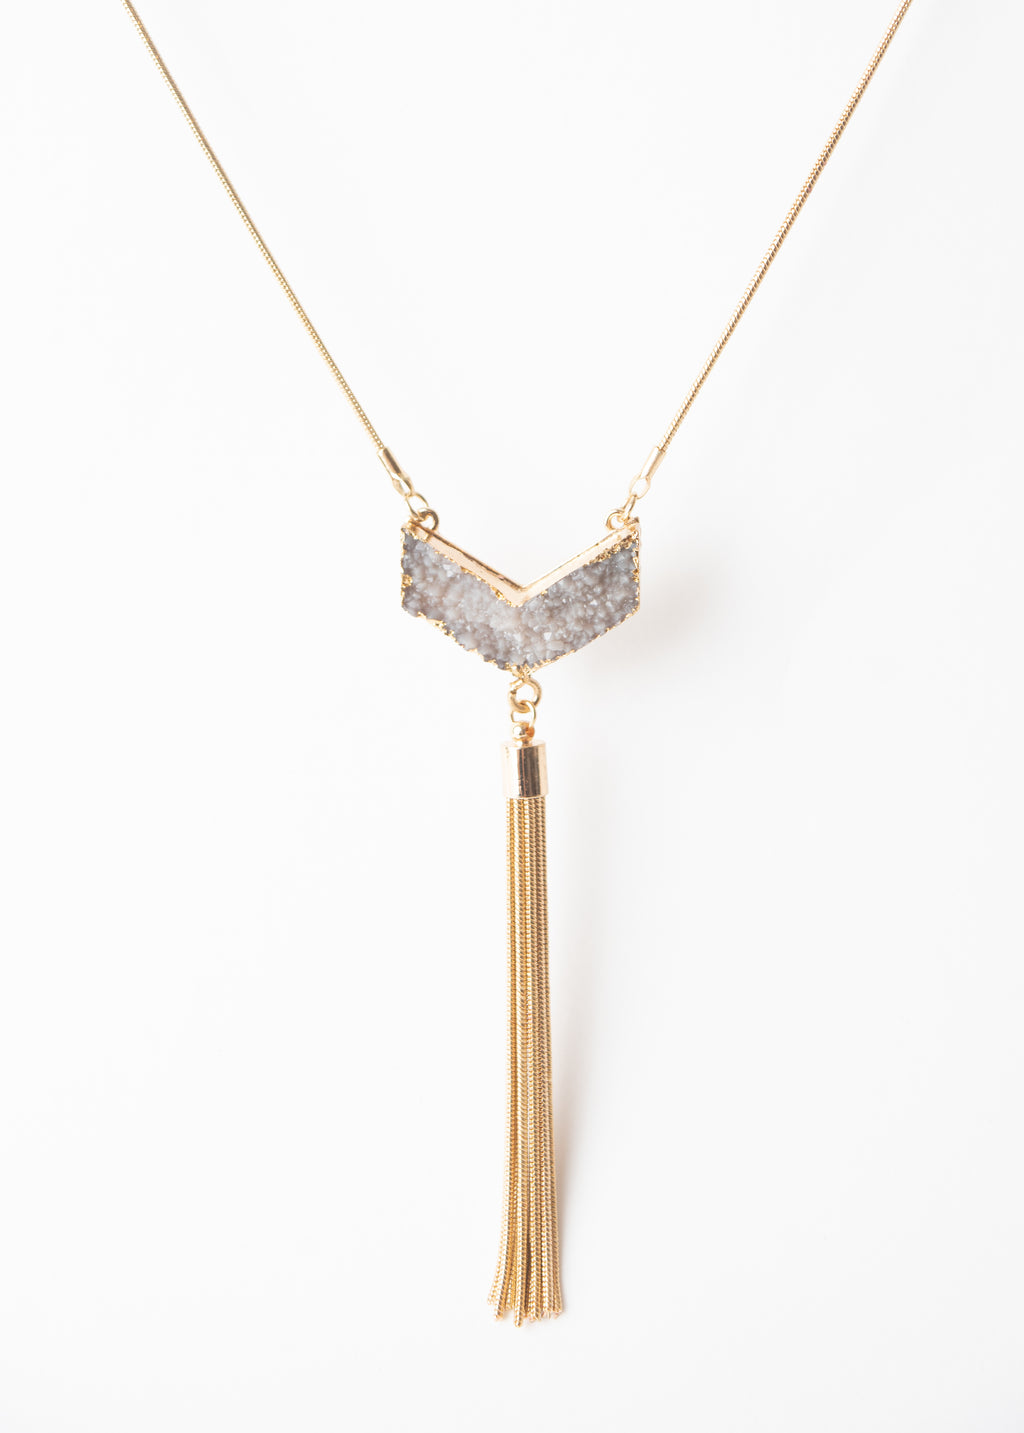 Beck & Boosh Gravity Statement Necklace Long Plated Gold necklace with Grey V-shaped Druzy Pendant with gold chain tassel hanging below